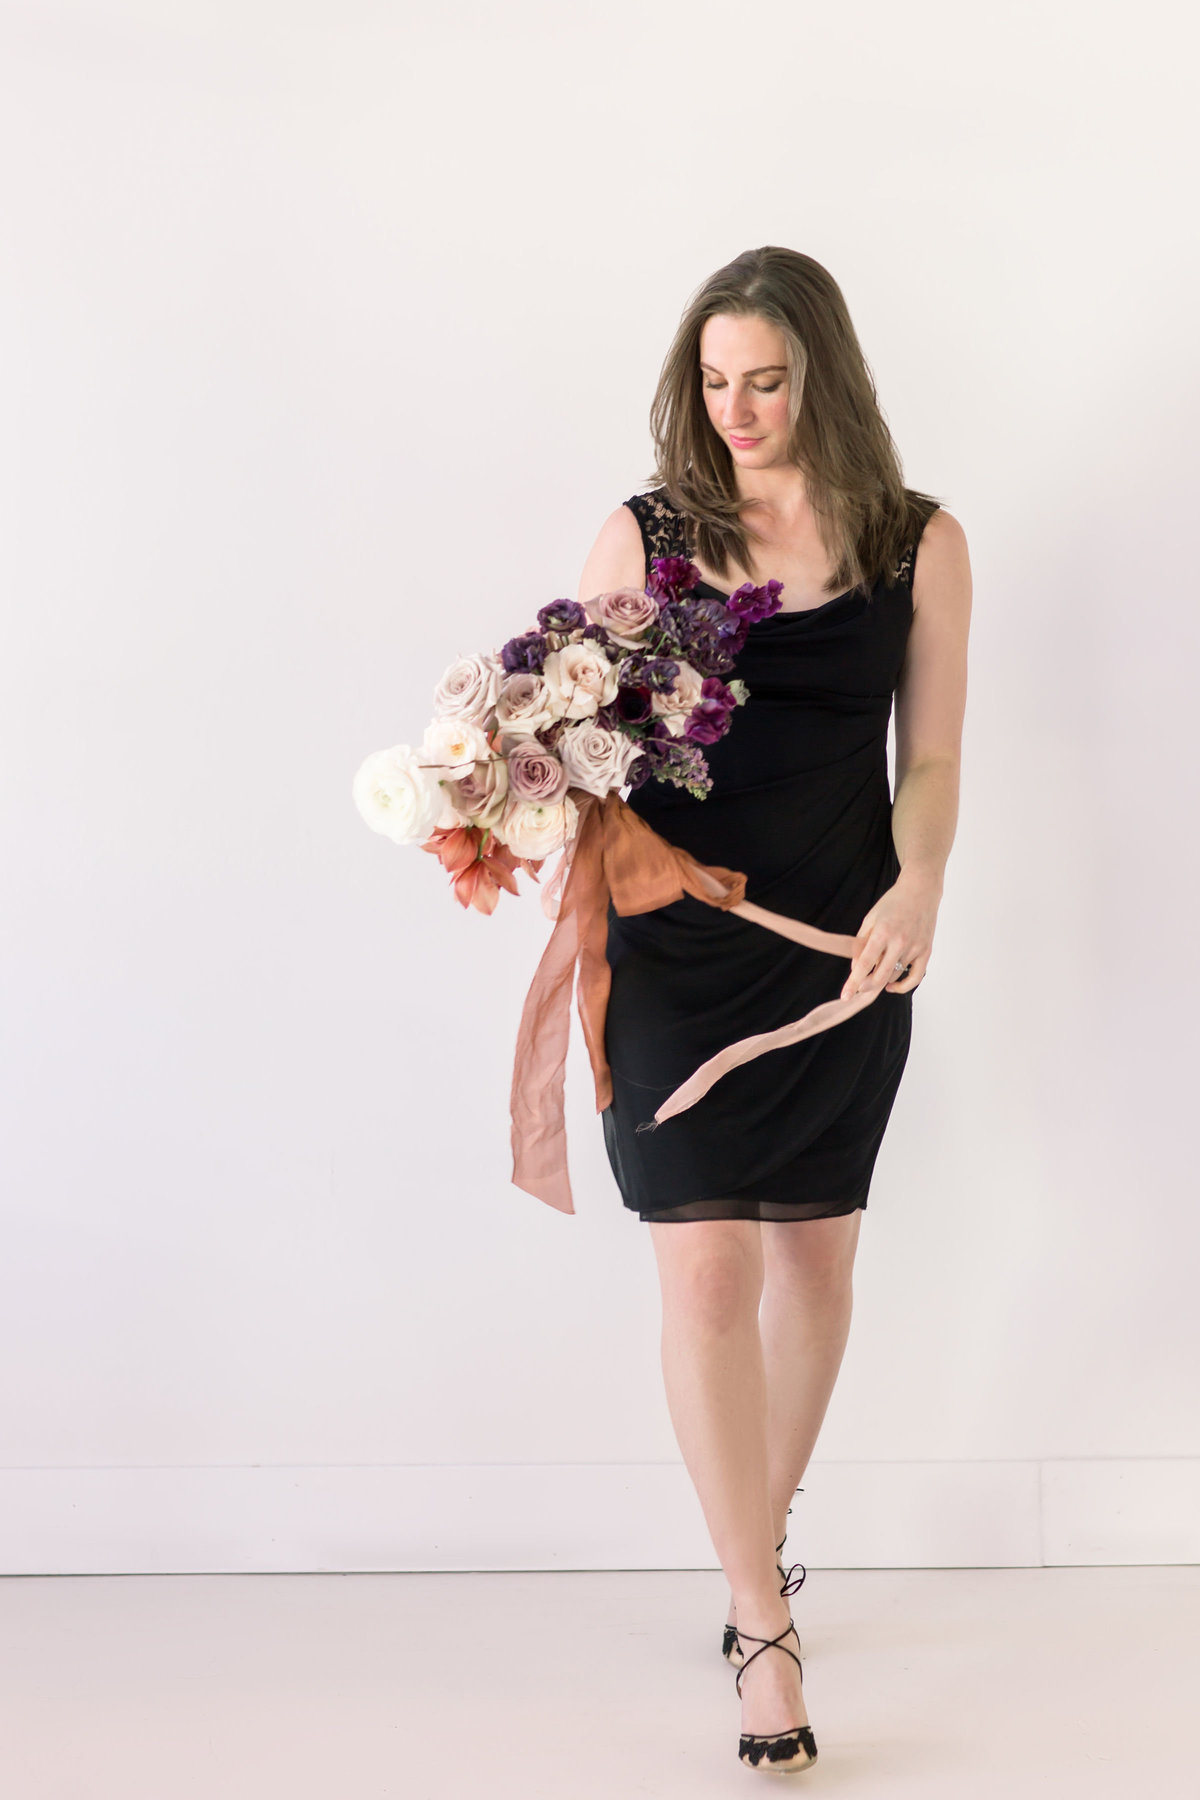 Studio photography for florist brand